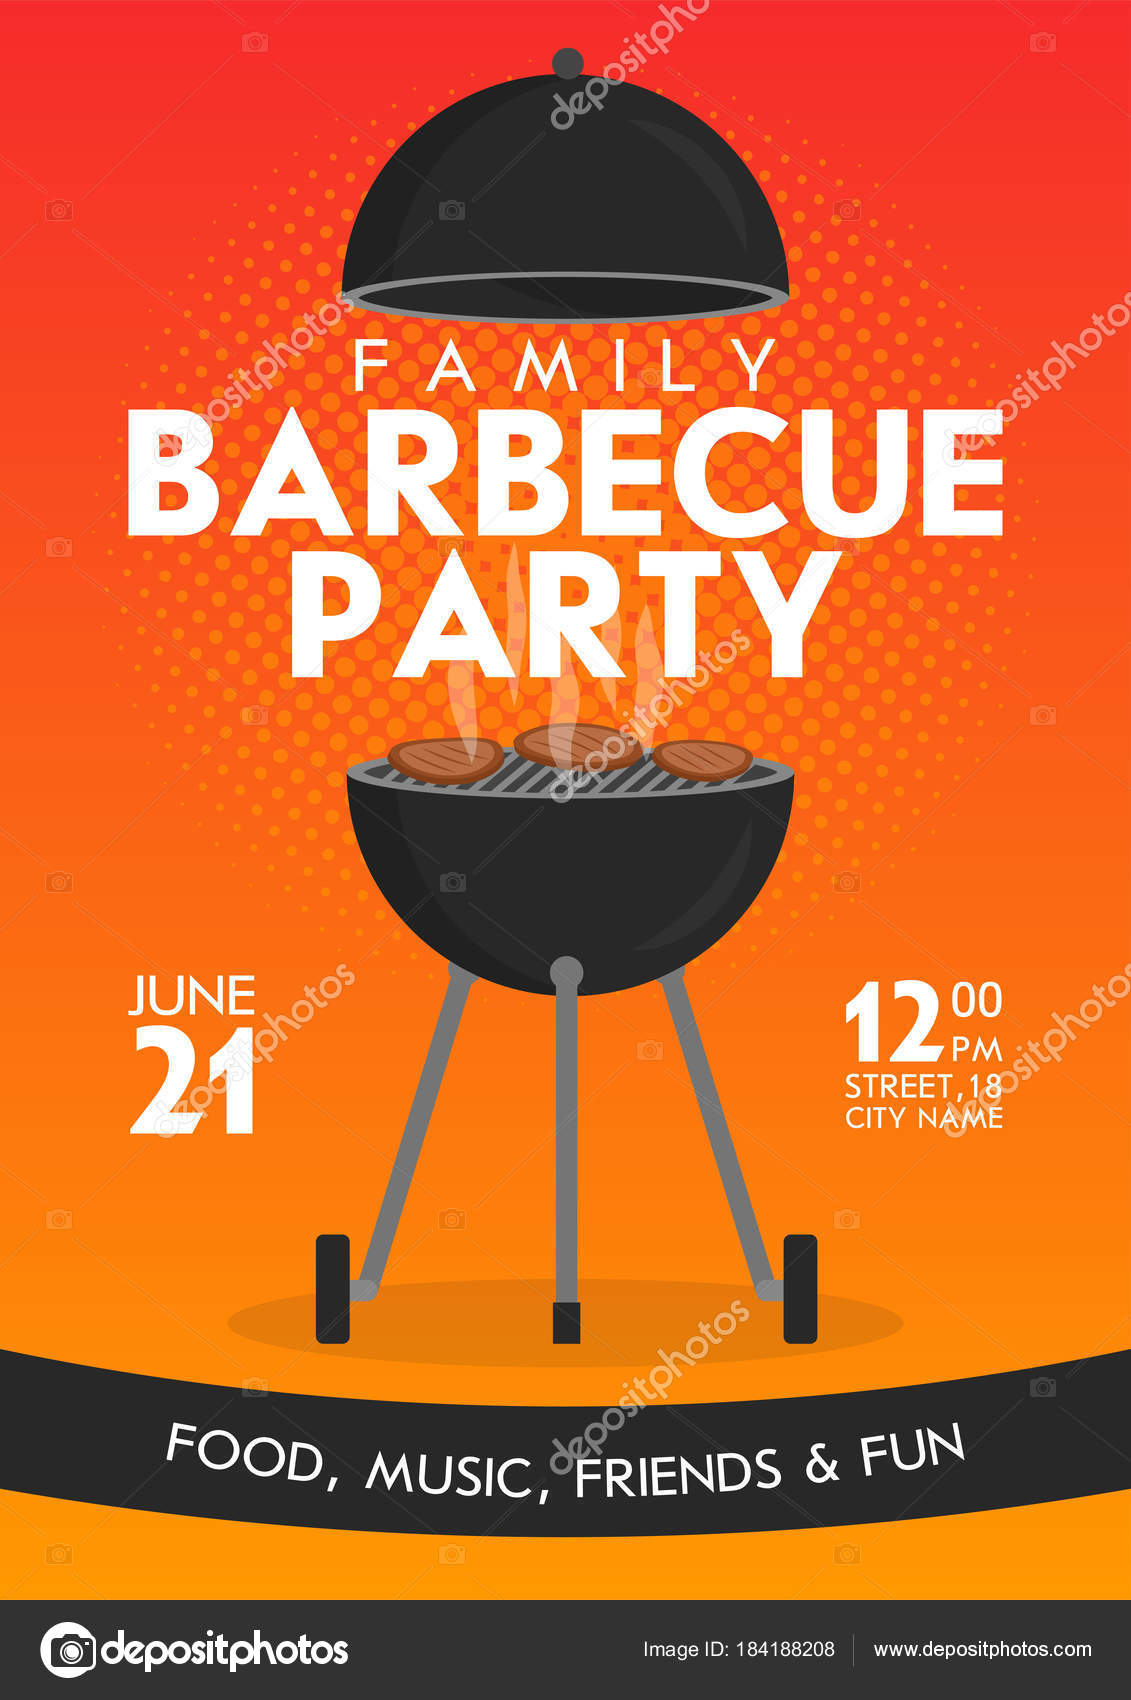 mod le de conception belle vecteur barbecue party invitation d finie conception de l affiche. Black Bedroom Furniture Sets. Home Design Ideas